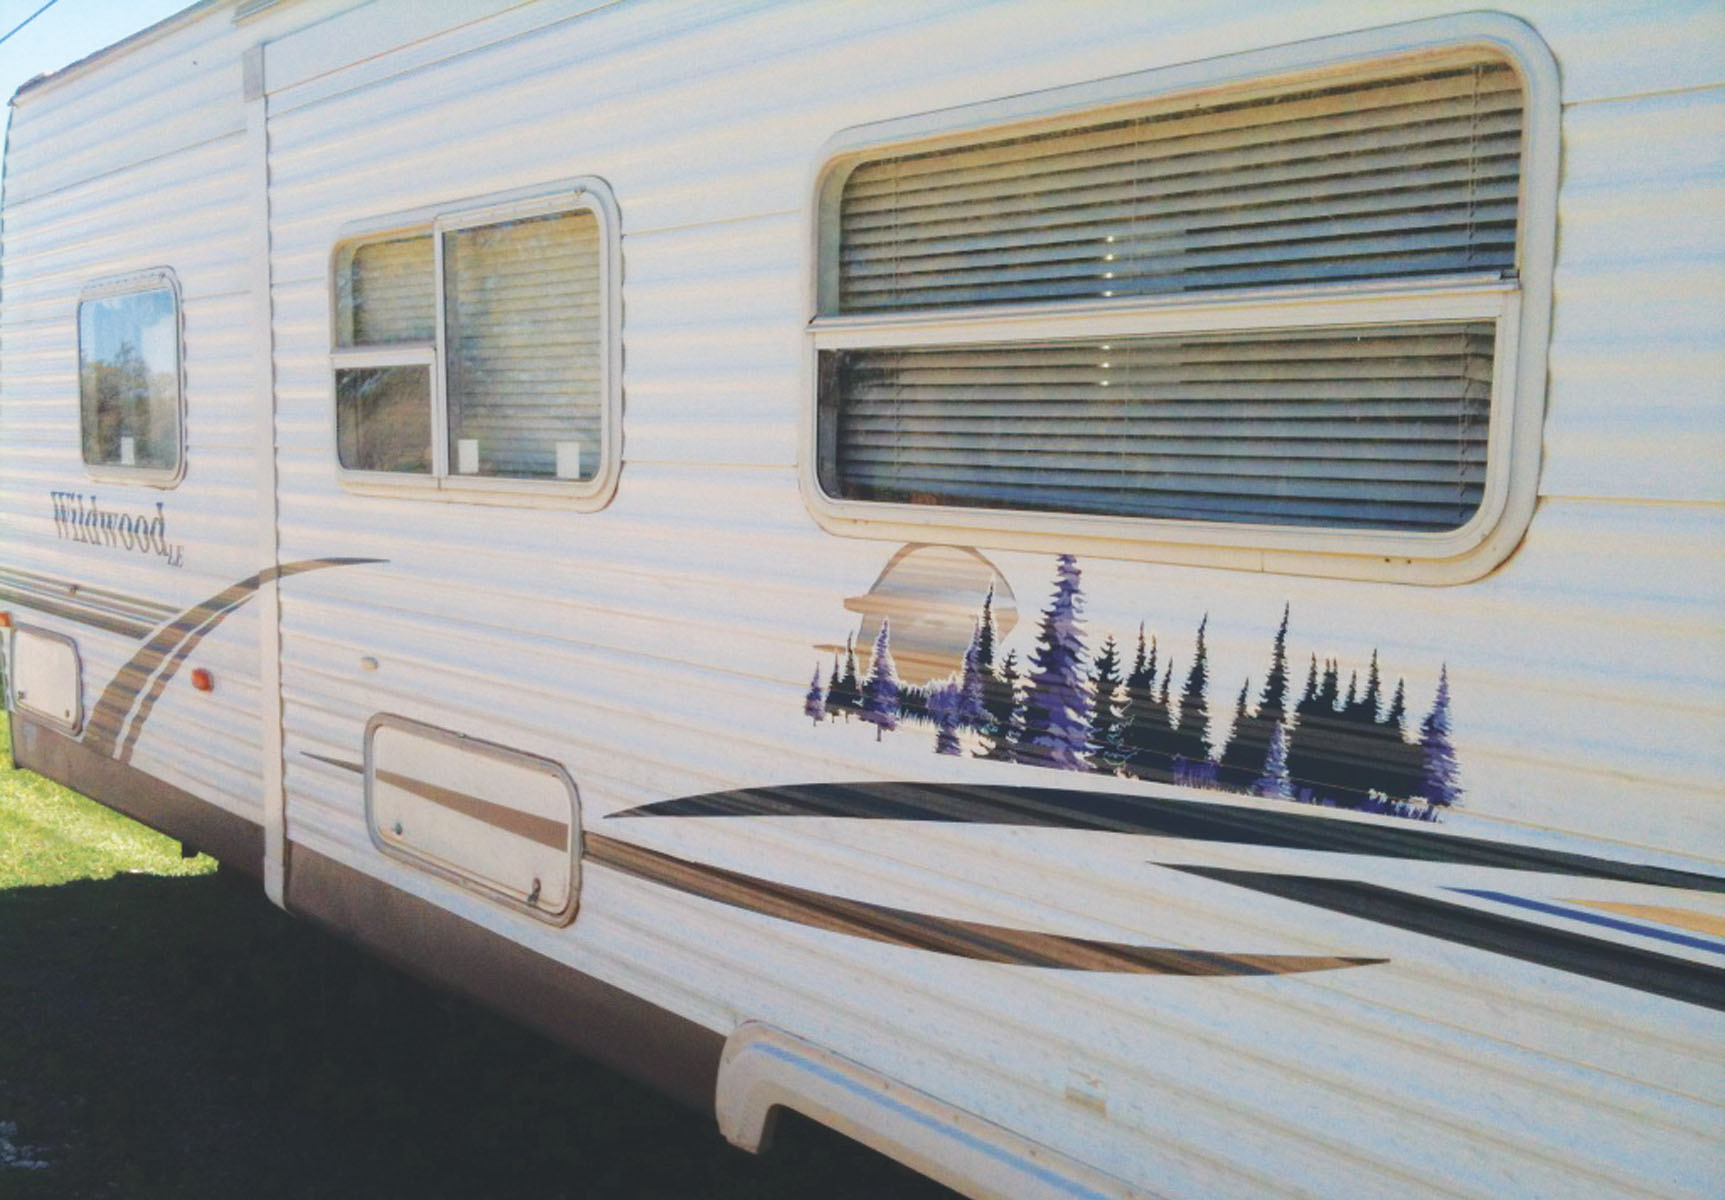 This travel trailer was sold under false pretenses on Craig's List. It was reported stolen shortly after the transaction.